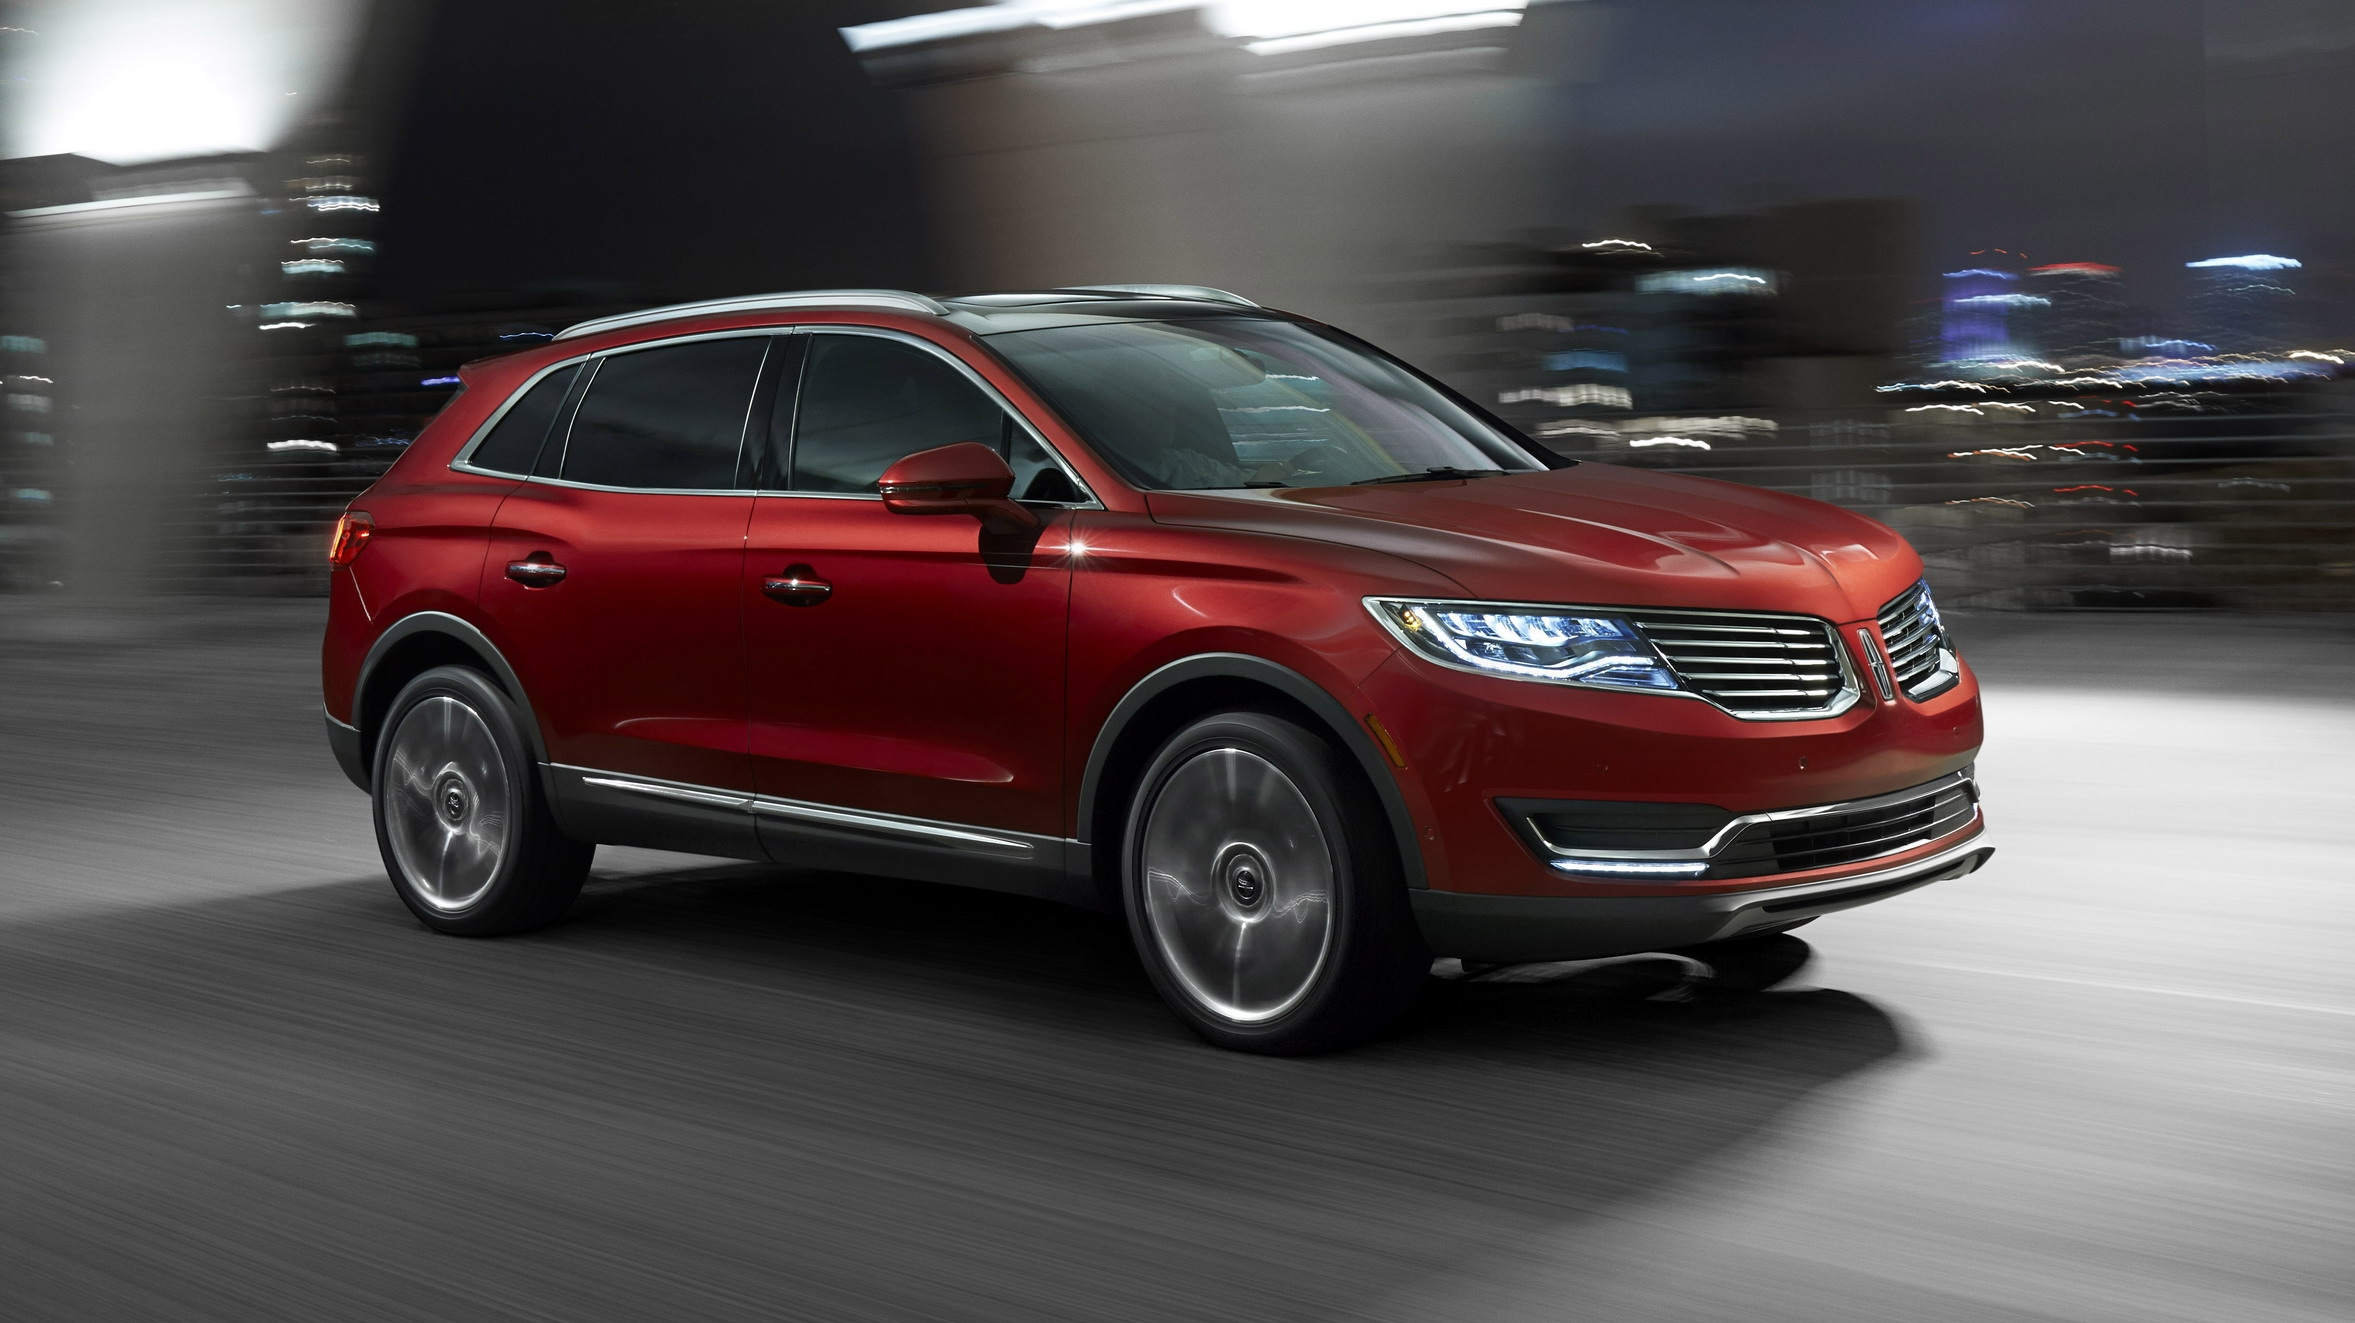 lincoln front rating angular motor trend mkz and fwd mkx suv reviews price cars